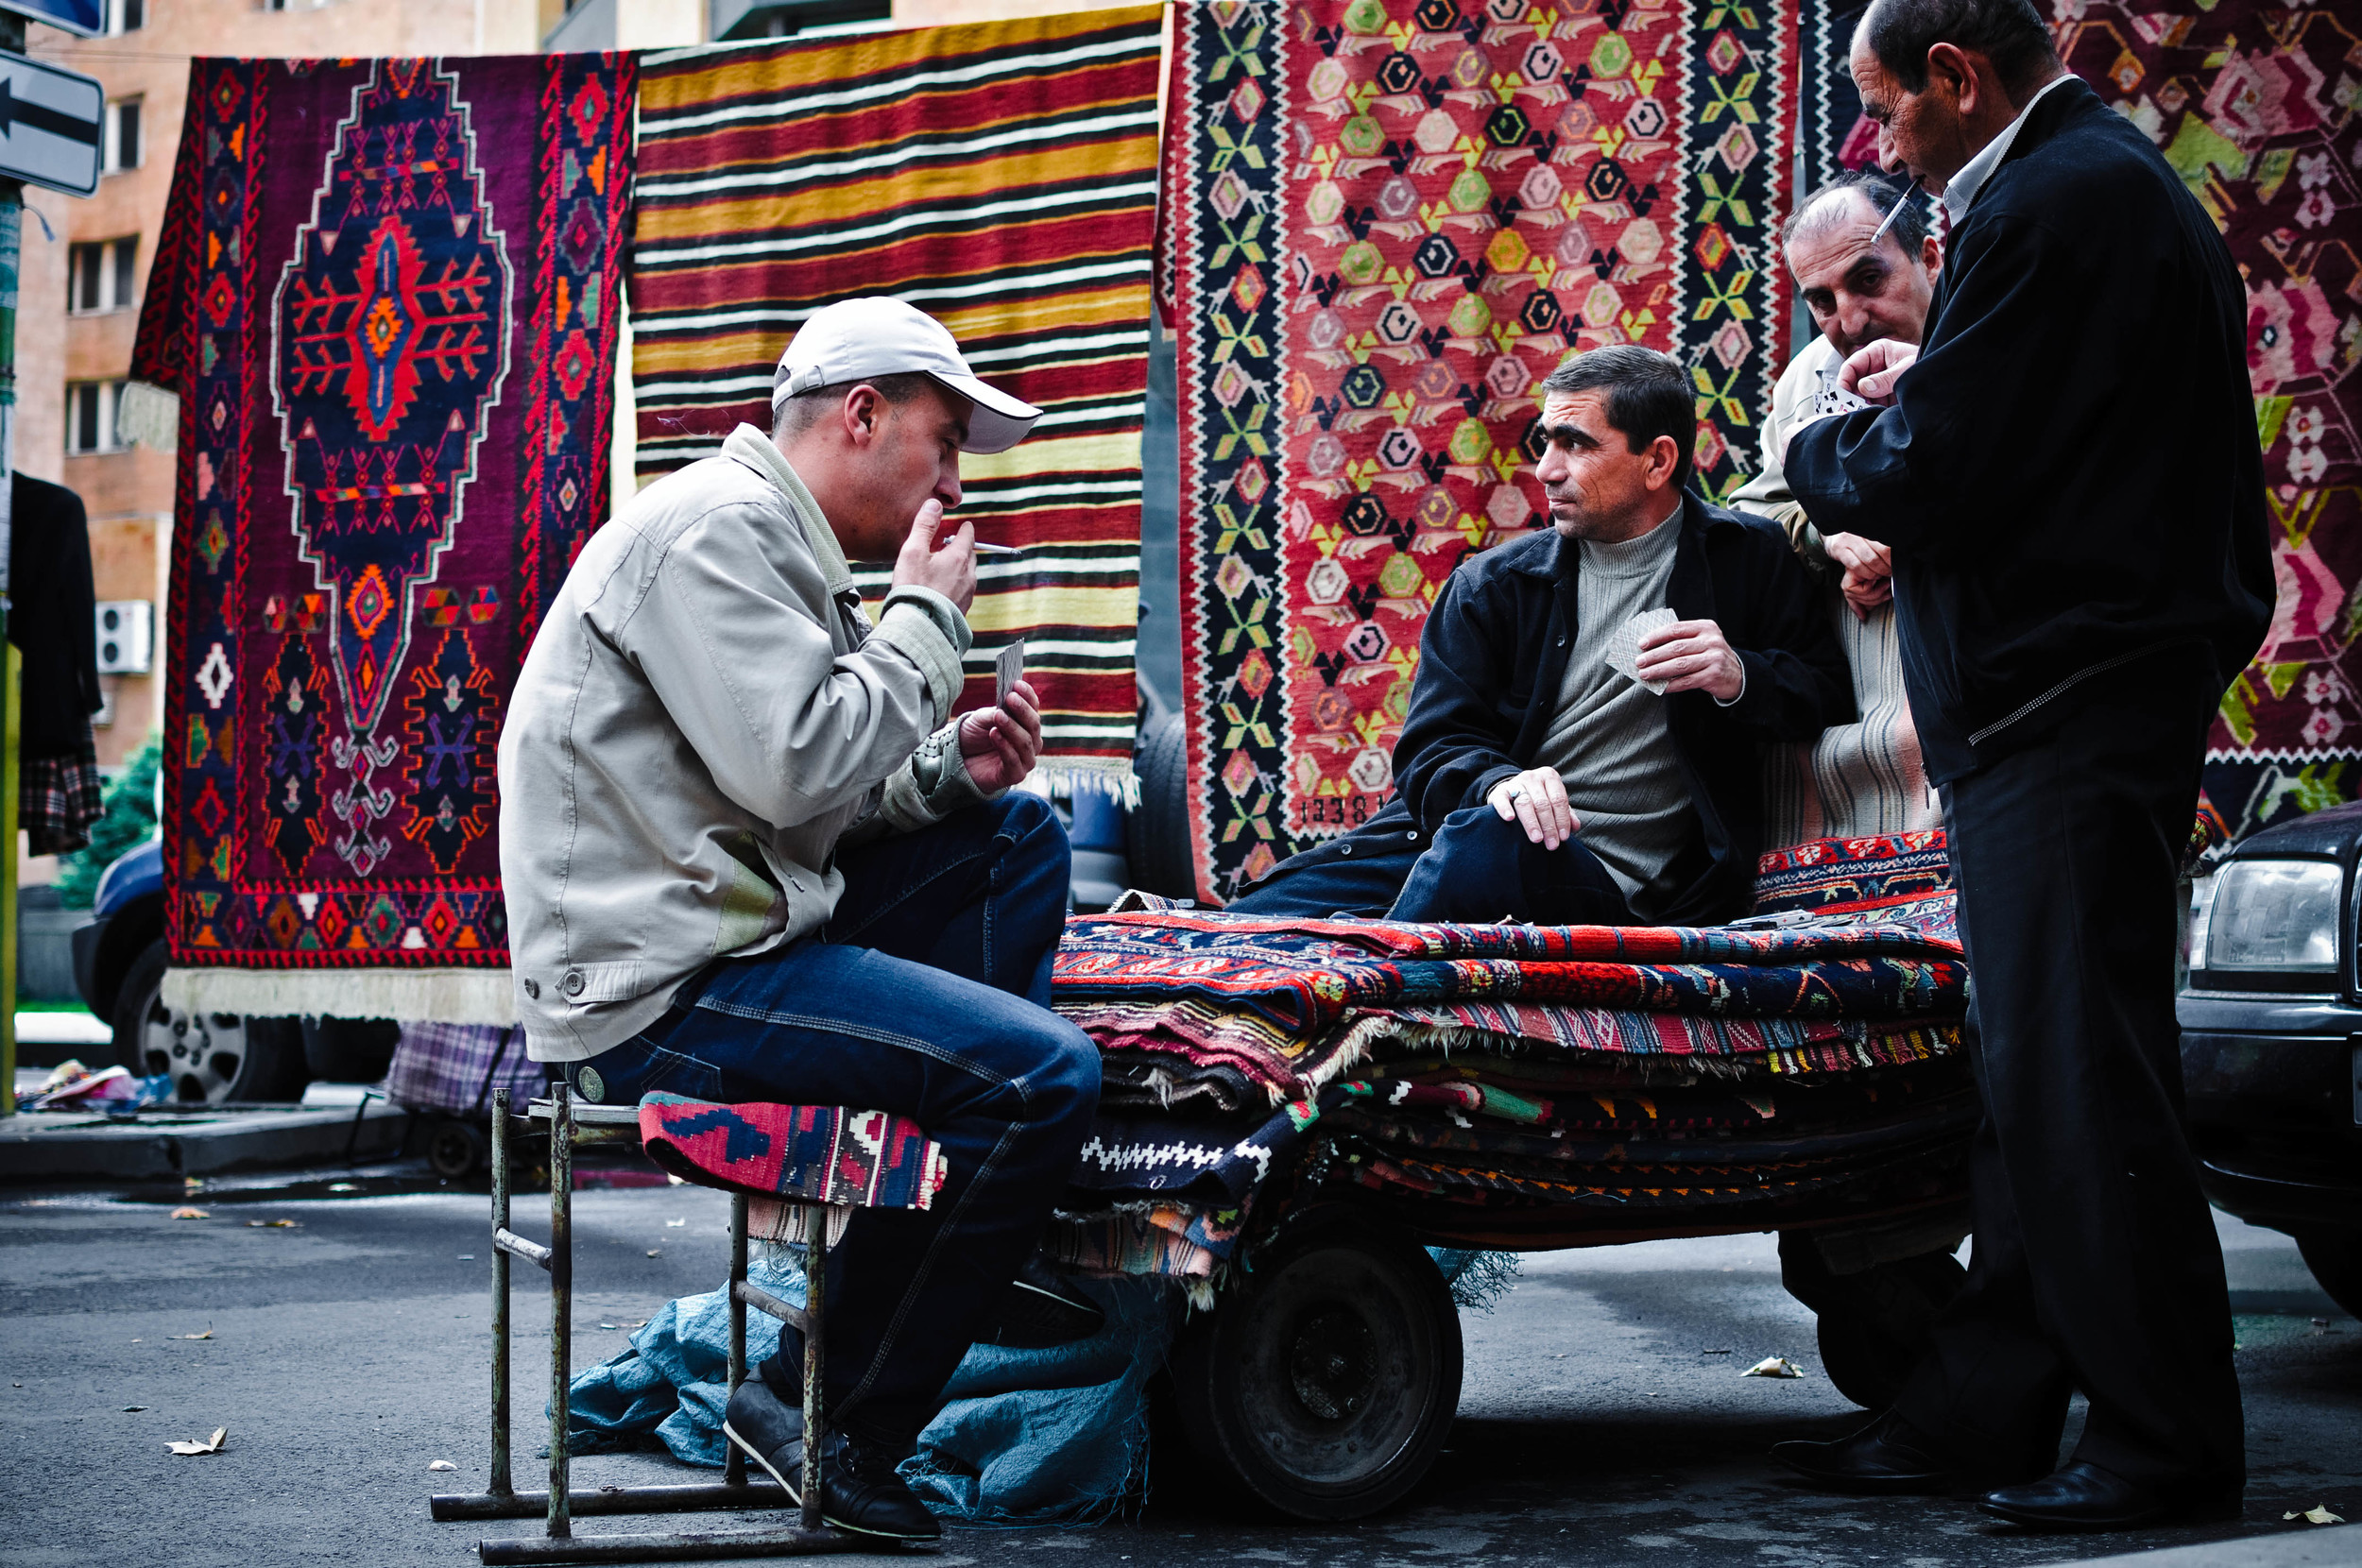 Armenian rug salesmen pass the time with a game of cards in the market.